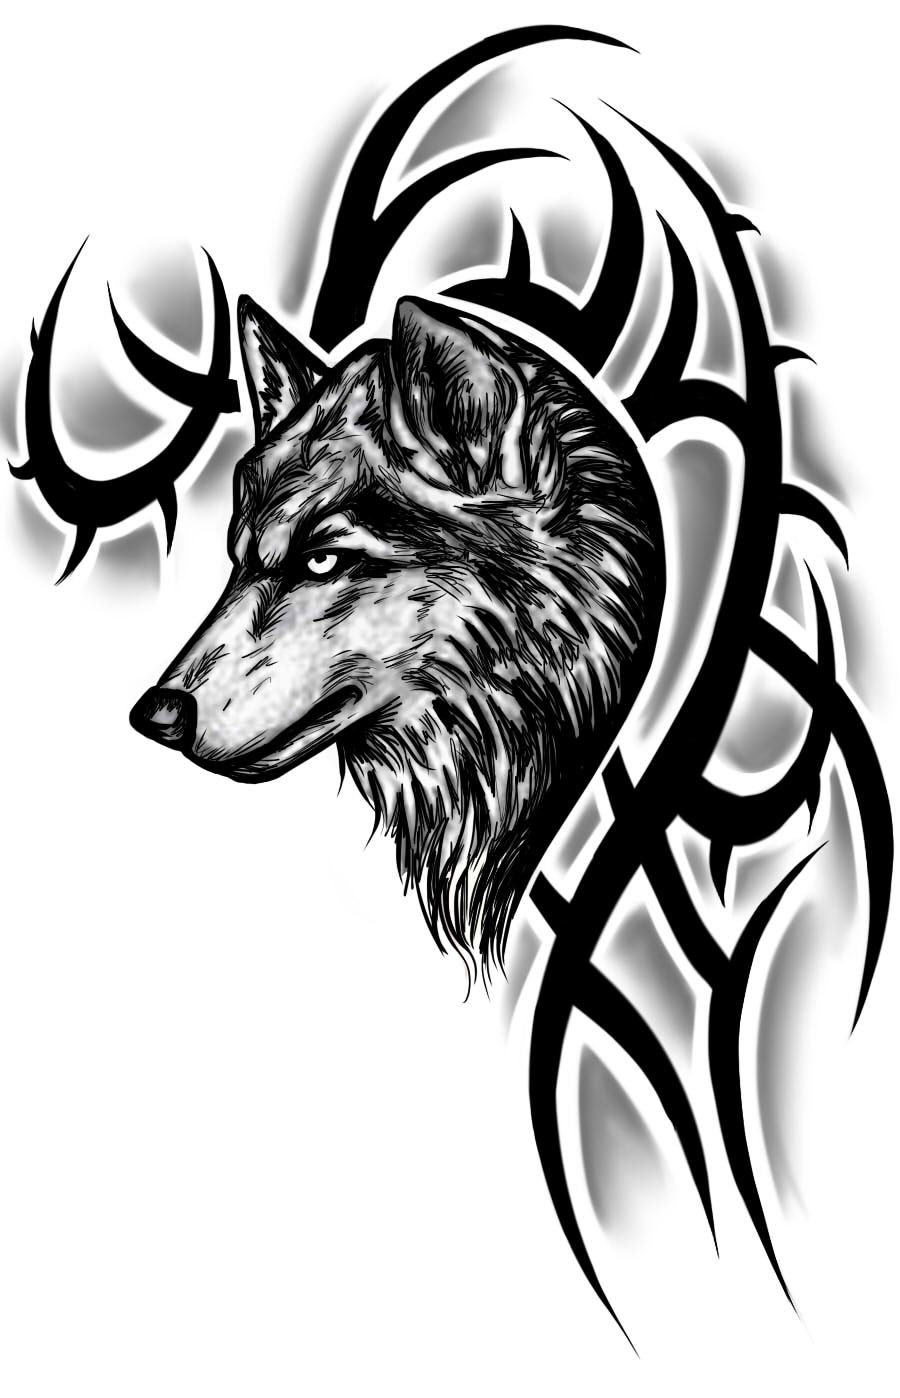 Wolf Tattoos Designs Ideas And Meaning Tribal Wolf Tattoo Wolf Tattoos Men Wolf Tattoo Meaning